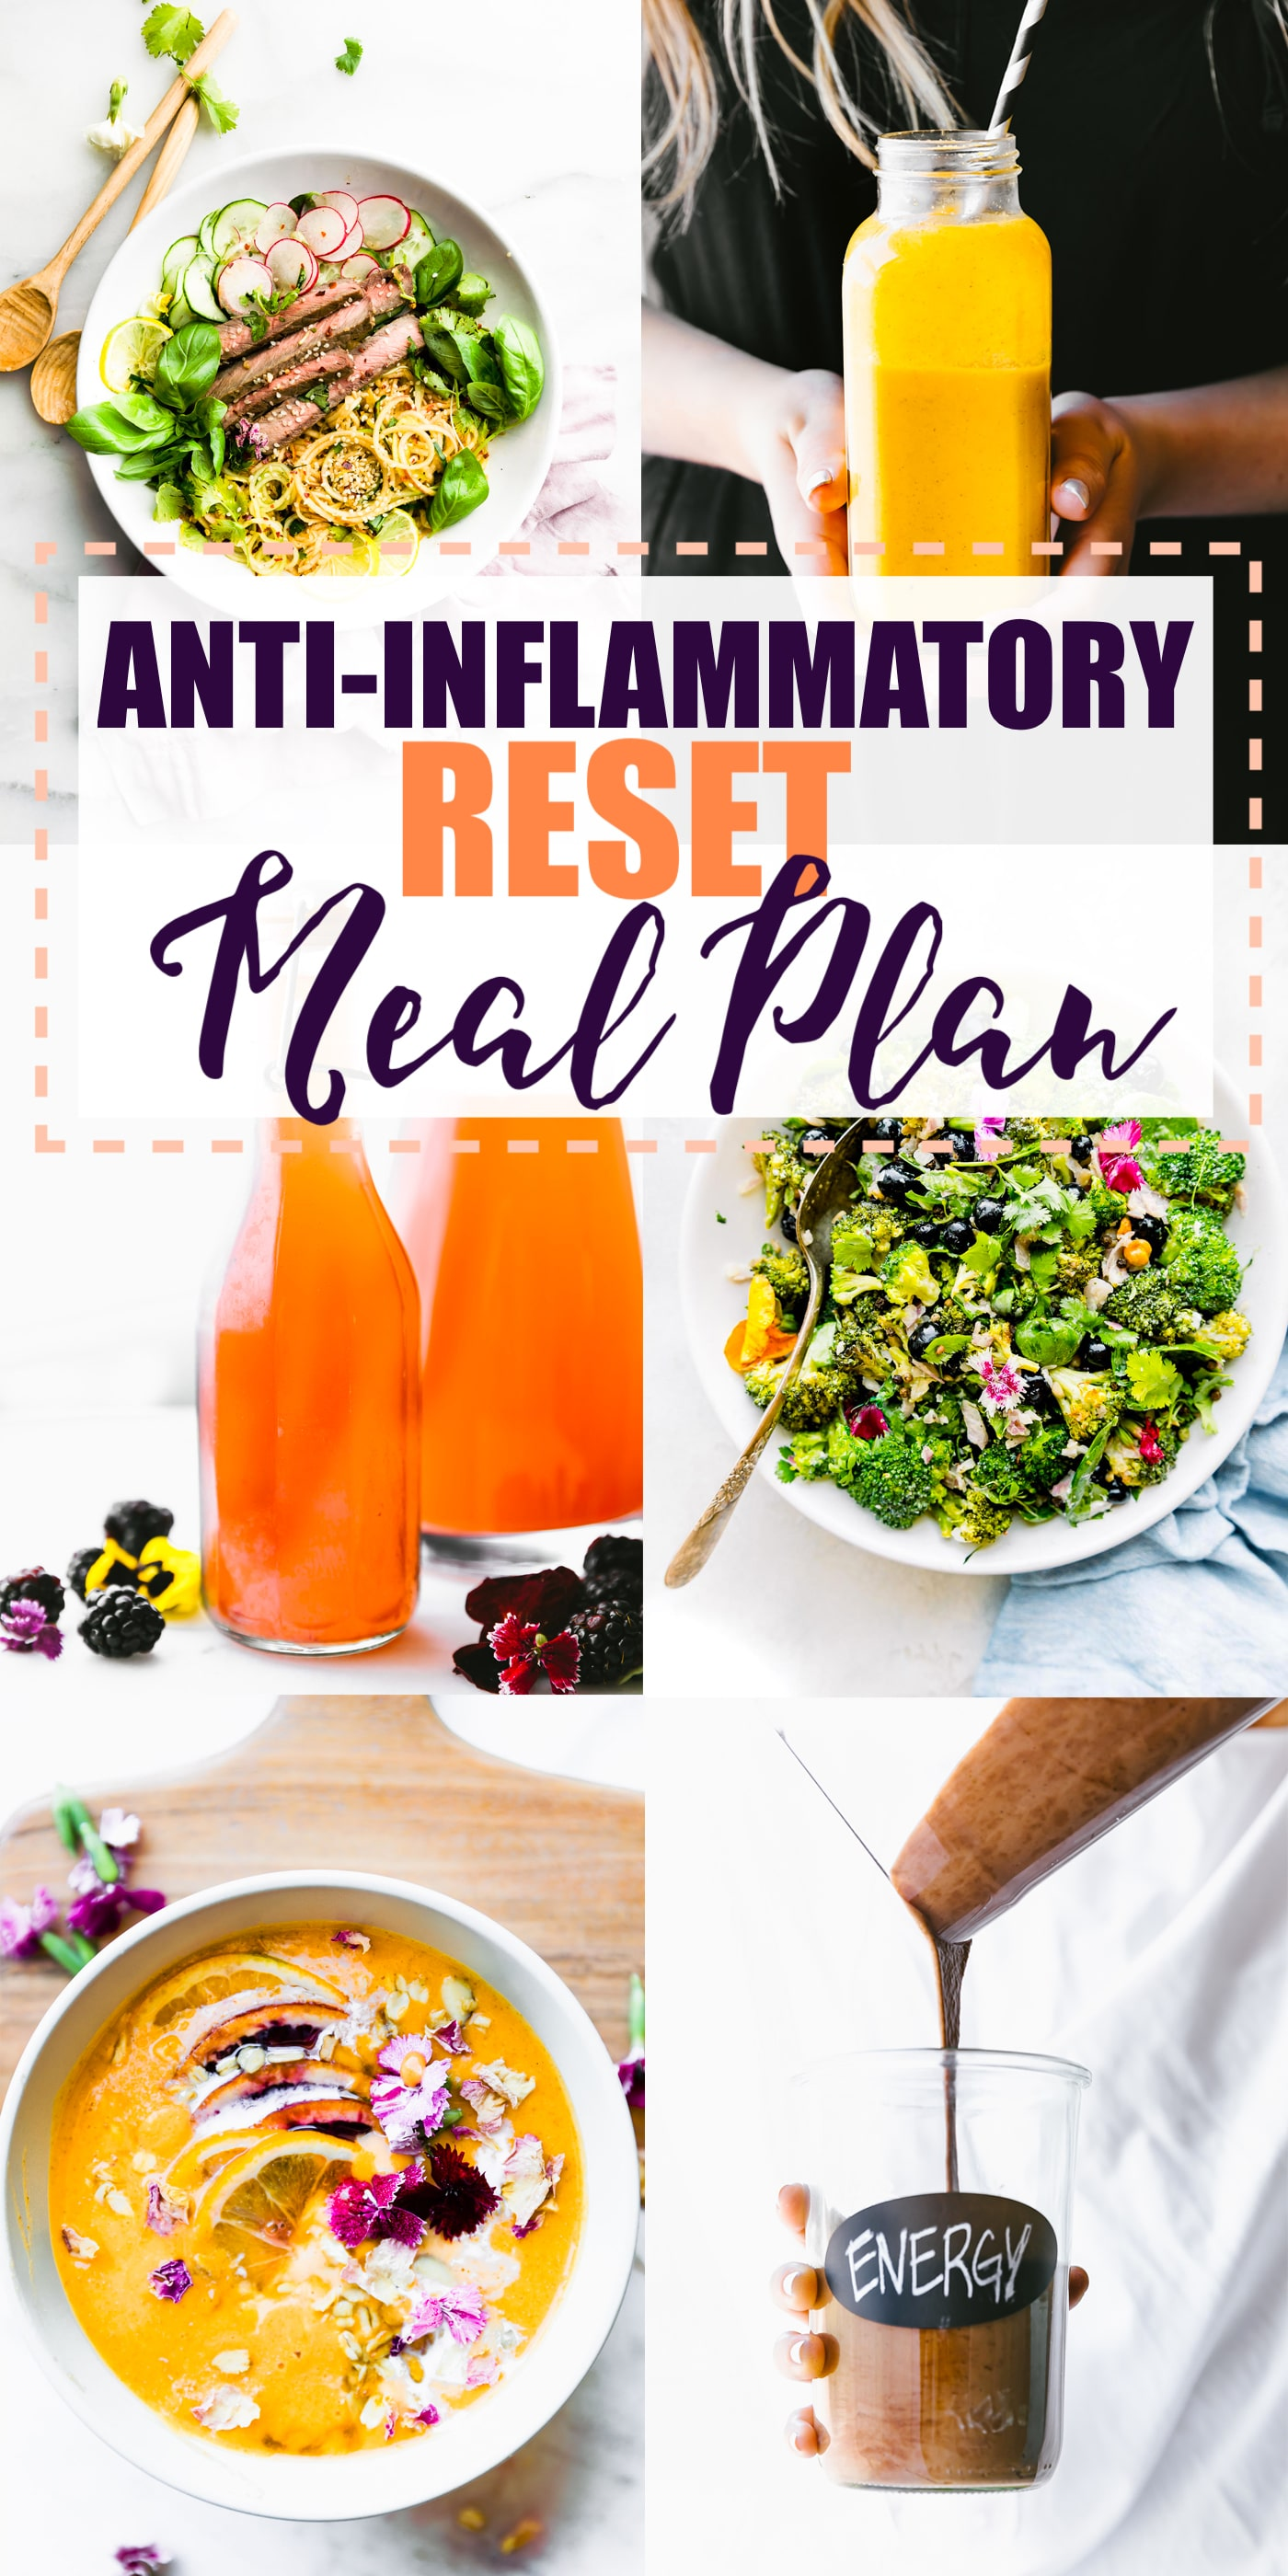 The anti-inflammatory diet meal plan is a simple, healthy meal plan to RESET your body from oxidative stress. If you're confused by the word anti-inflammatory, these healthy recipes are for you! Learn what foods help reduce inflammation and get delicious recipes to go along with it! #mealplan #antiinflammatory #diet #healthy